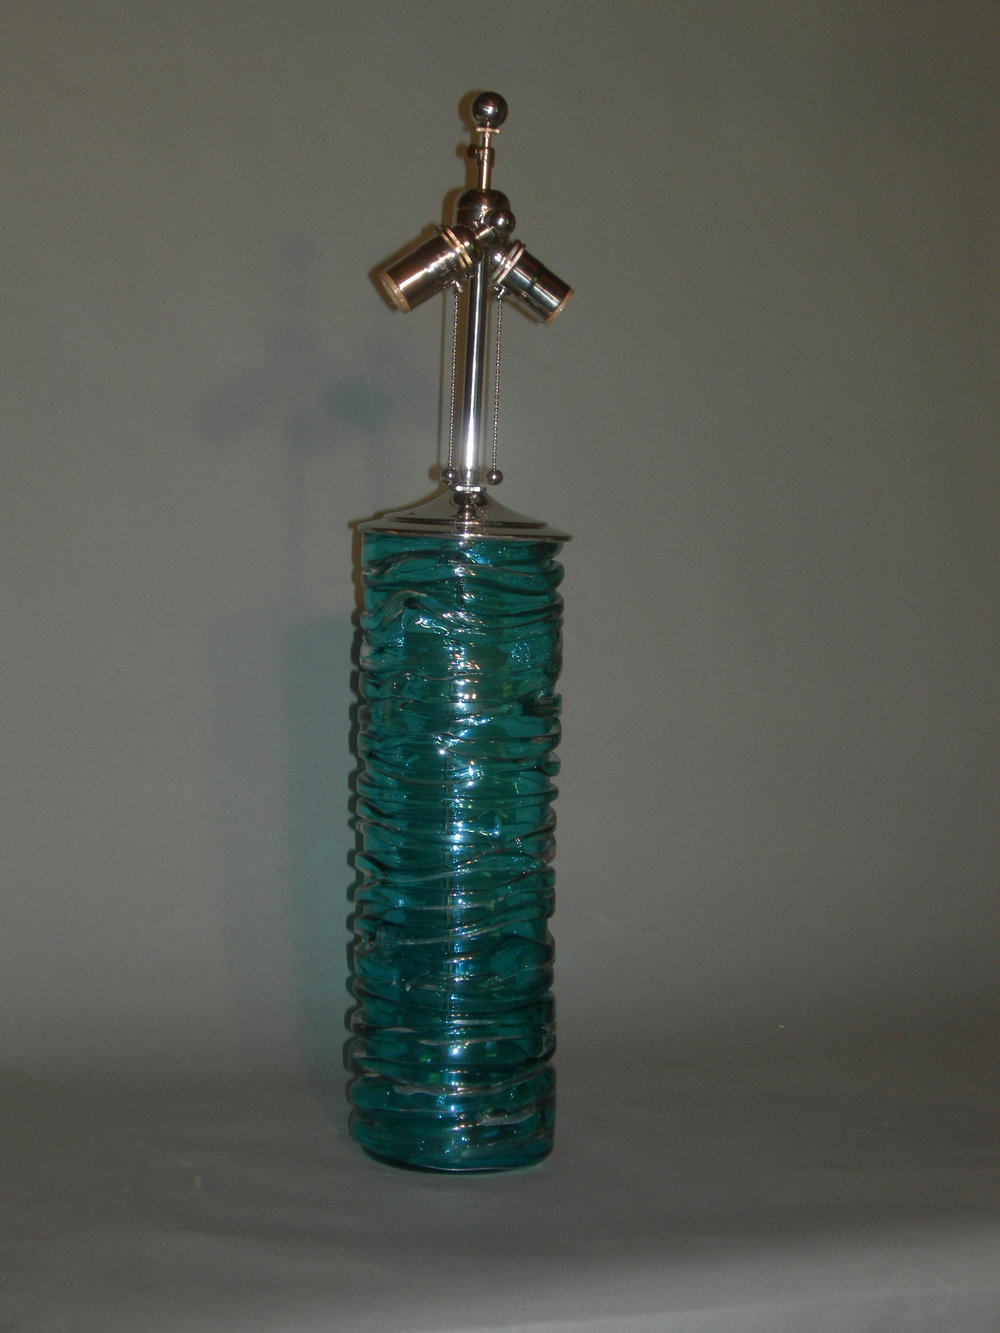 Colin table lamp in kingfisher blue.JPG